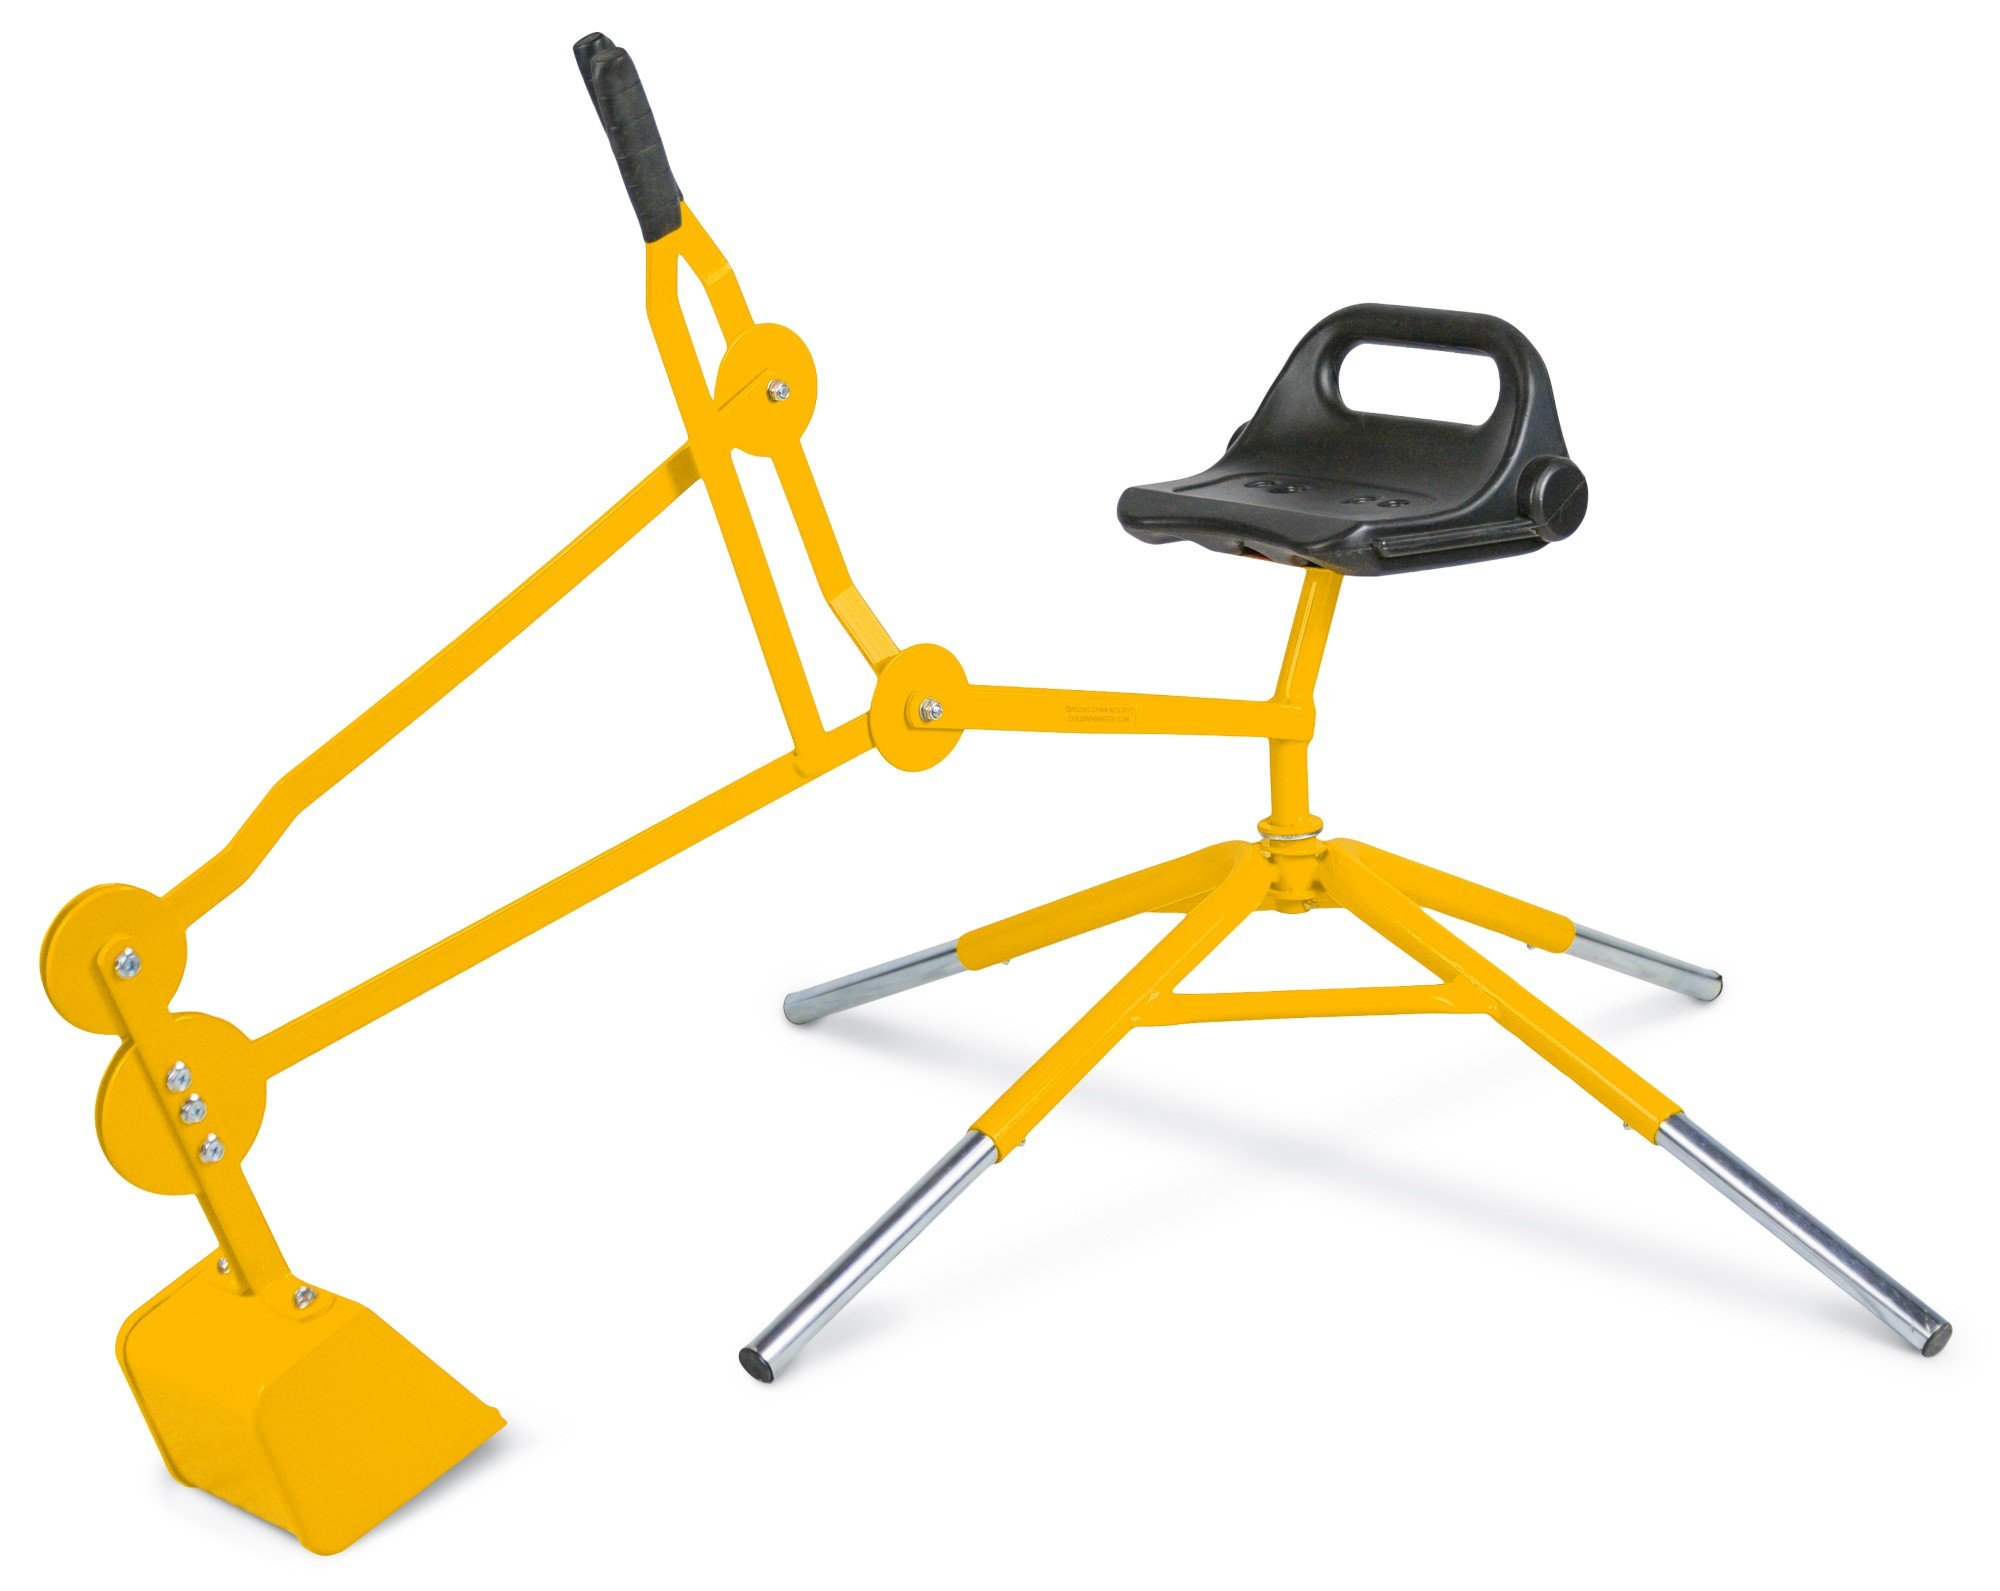 Childrensneeds.com Digger Toy with Telescoping Adjustable Legs That Raise Seat Height and Stabilize Backhoe for Digging (Yellow) by Childrensneeds.com